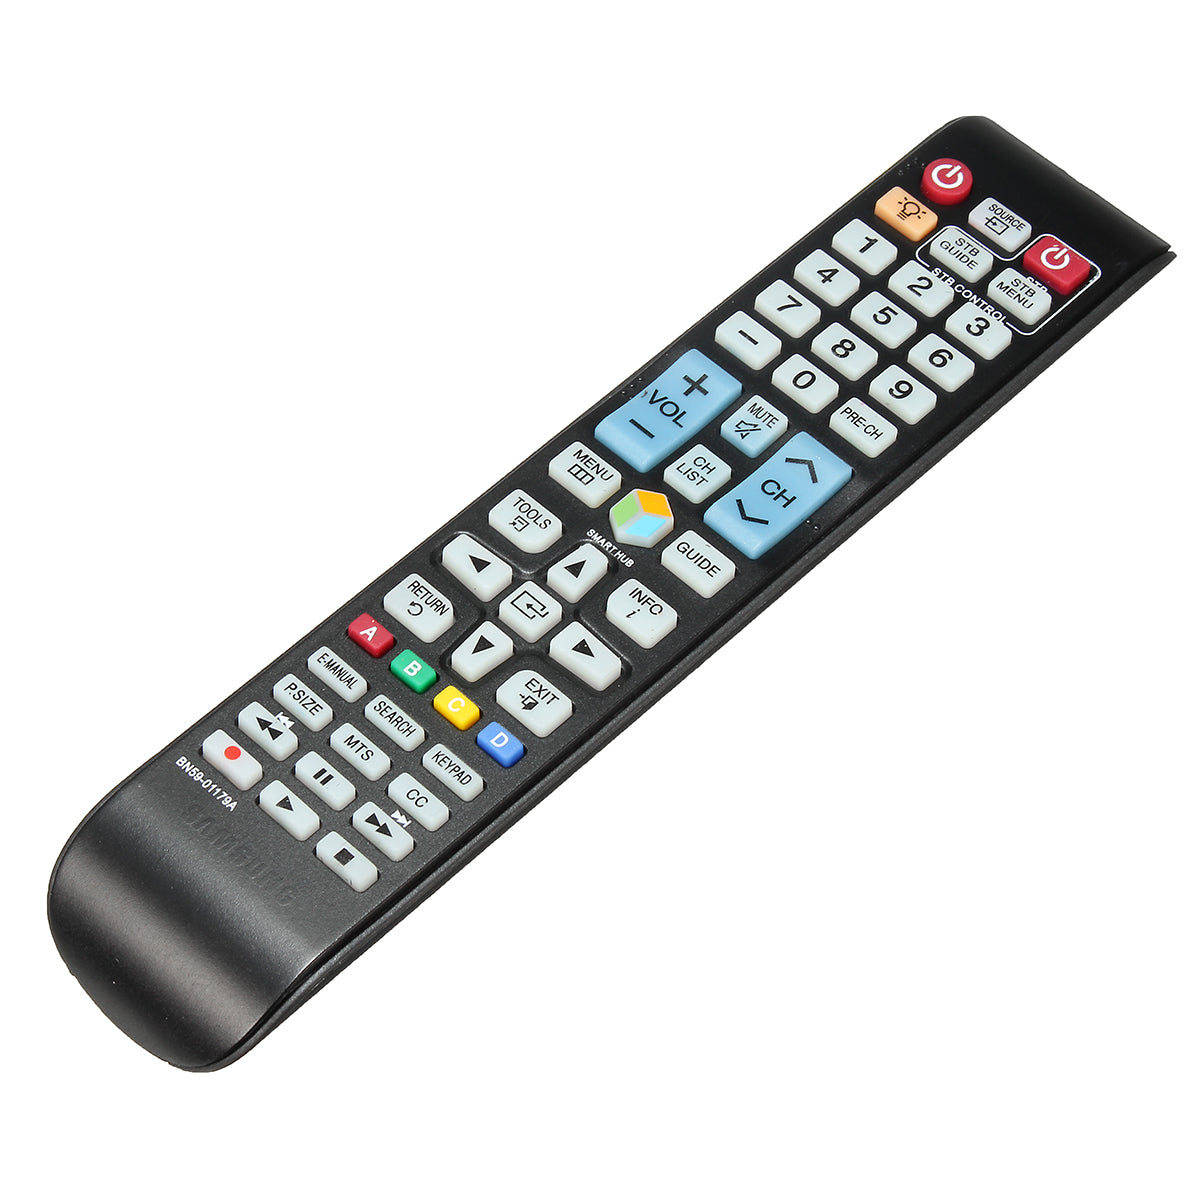 SAMSUNG TV Remote Control BN59-01179A for SAMSUNG LCD LED Smart TV